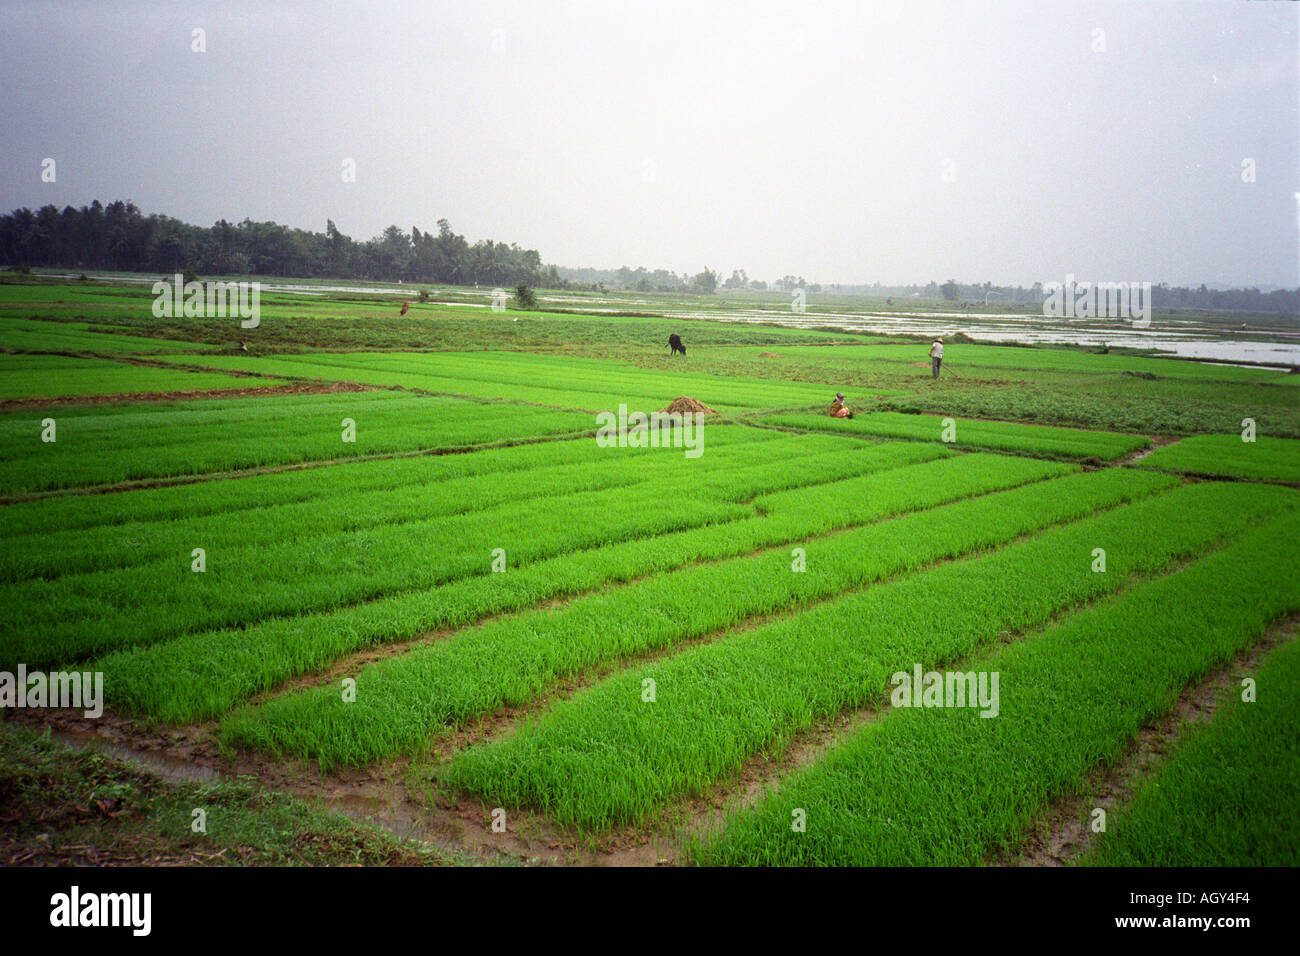 Vietnam Near Quang Ngai Working In The Fields Paddy Fields Rice Stock Photo Alamy